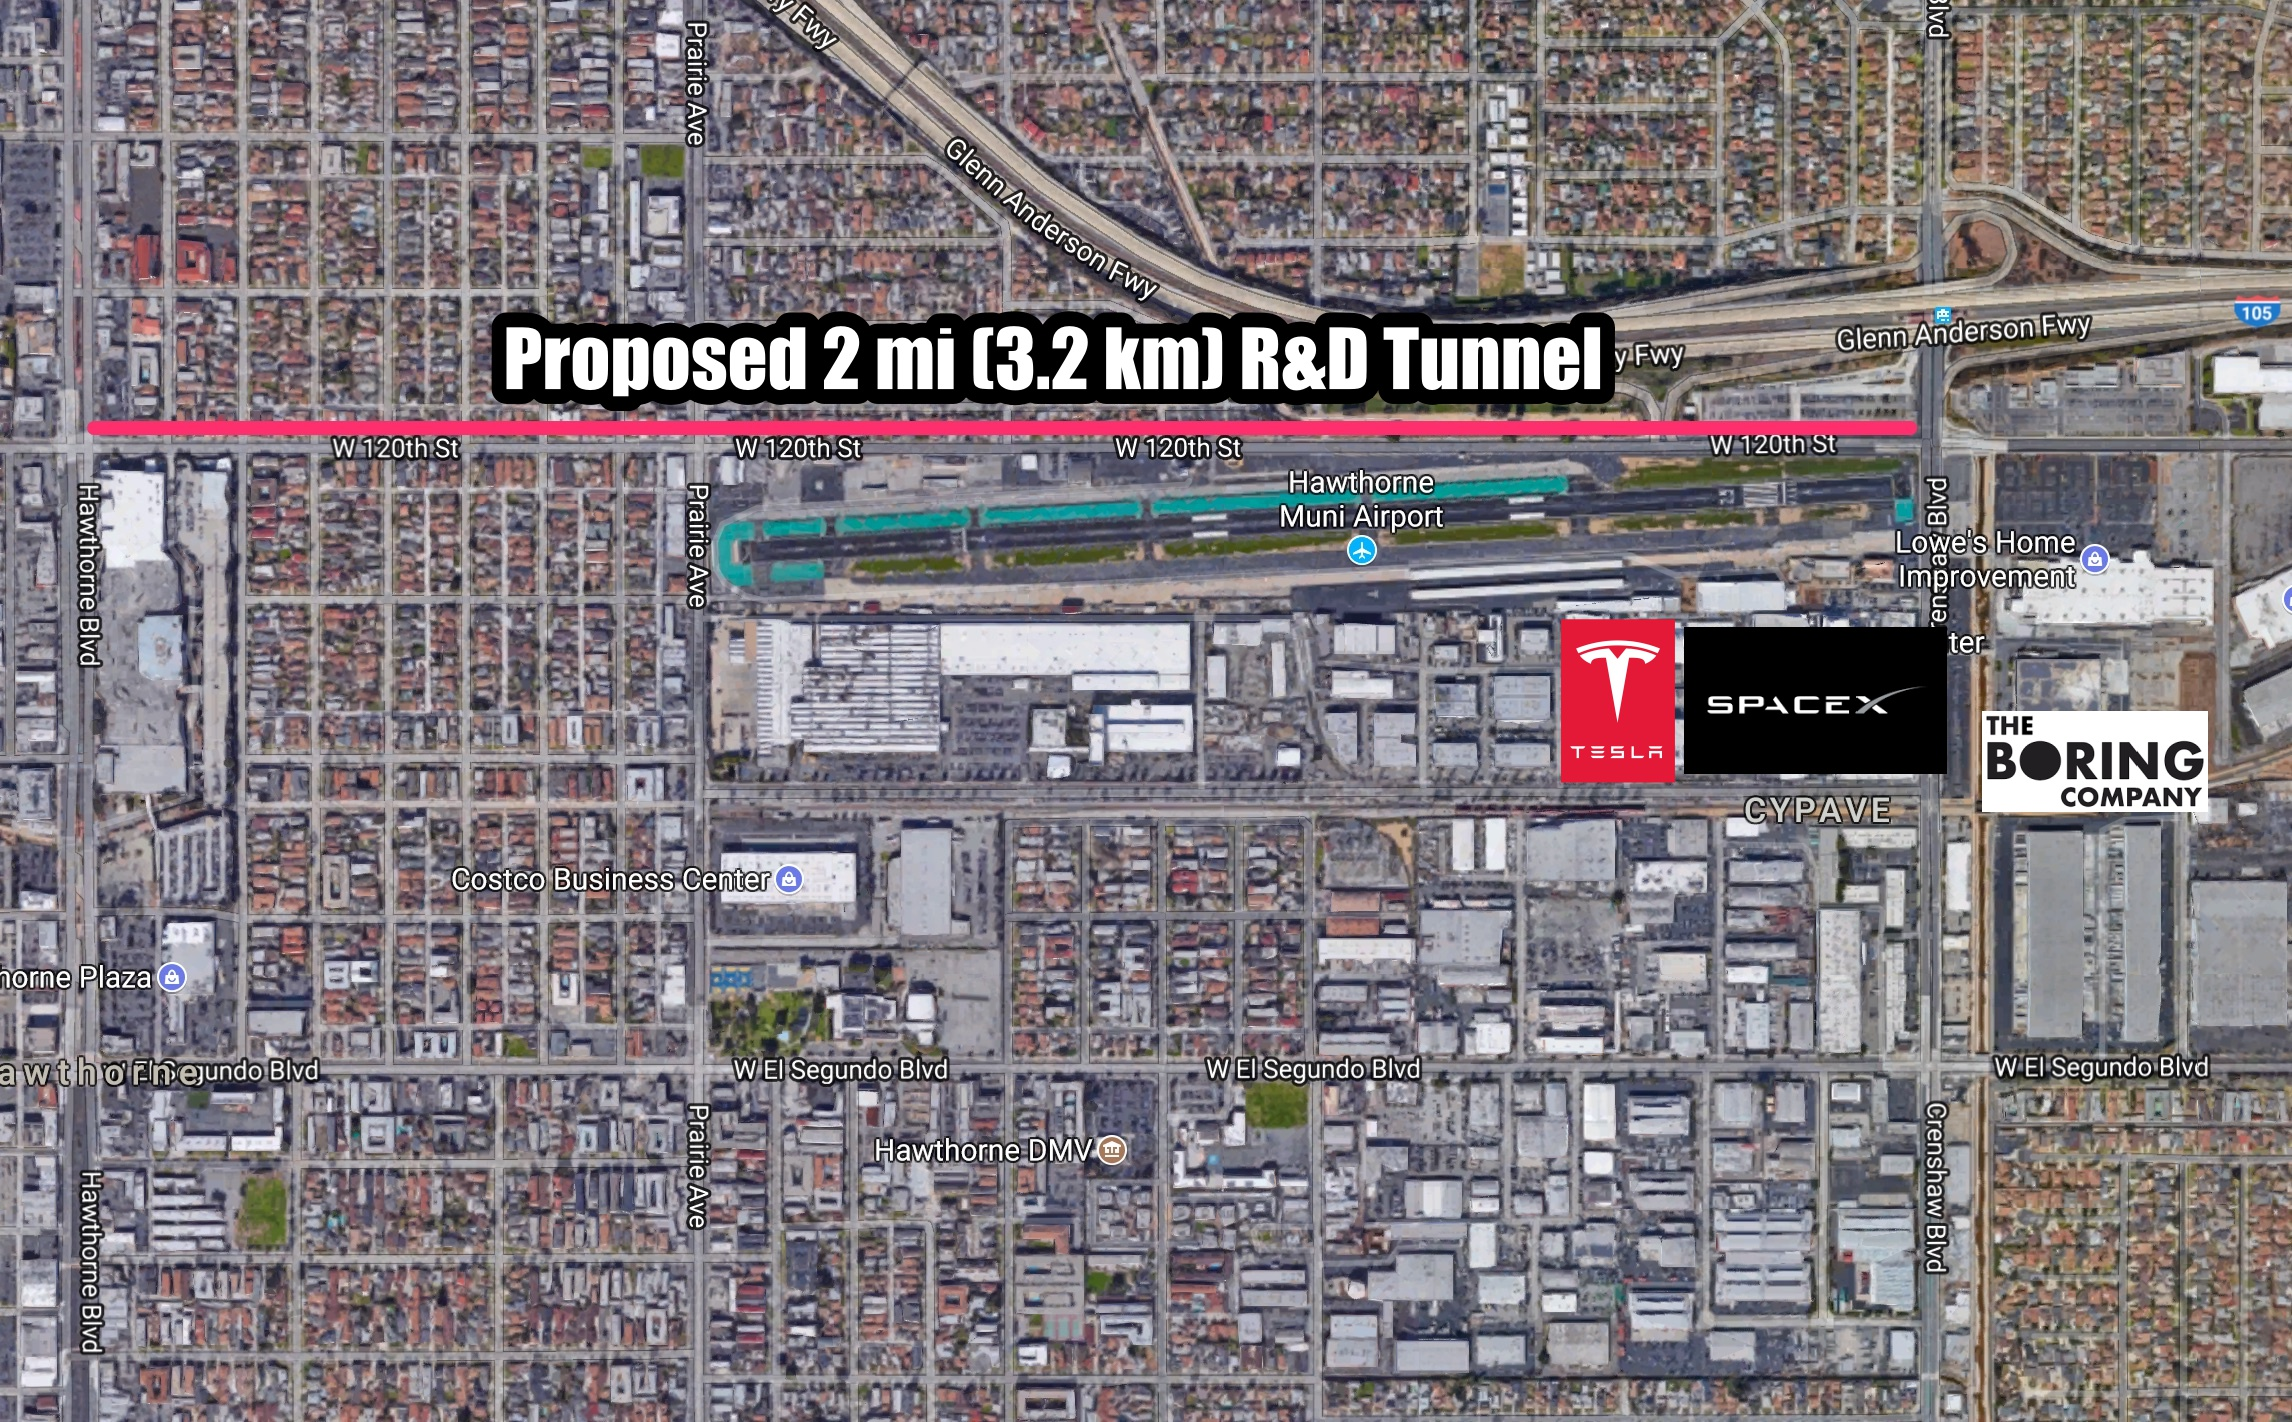 map-the-boring-company-tunnel-hawthorne